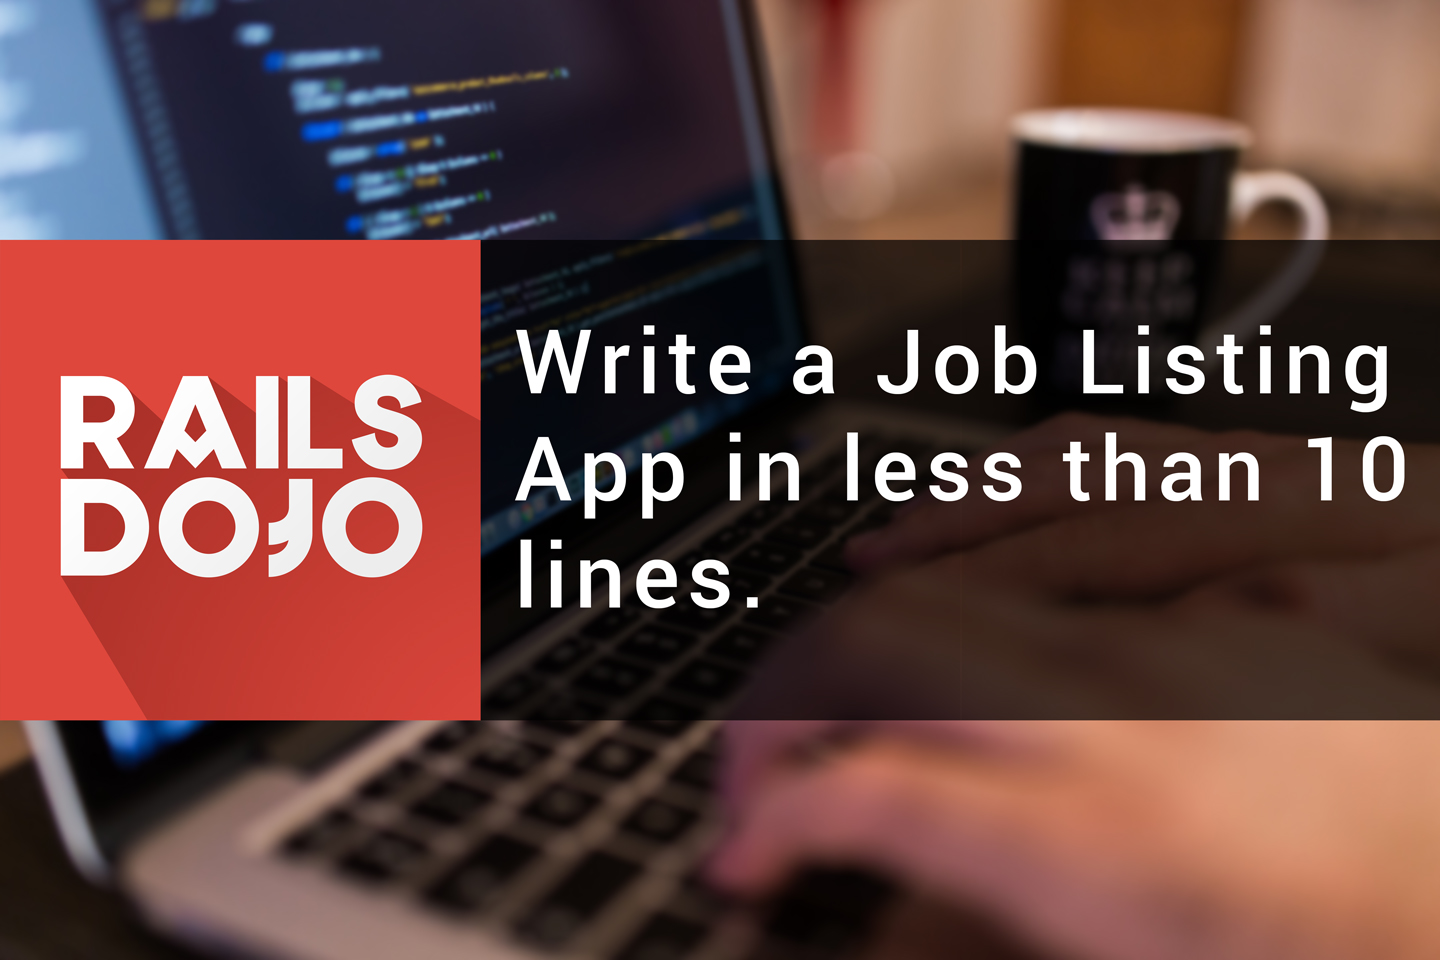 Build a Job Listing App in Less than 10 lines